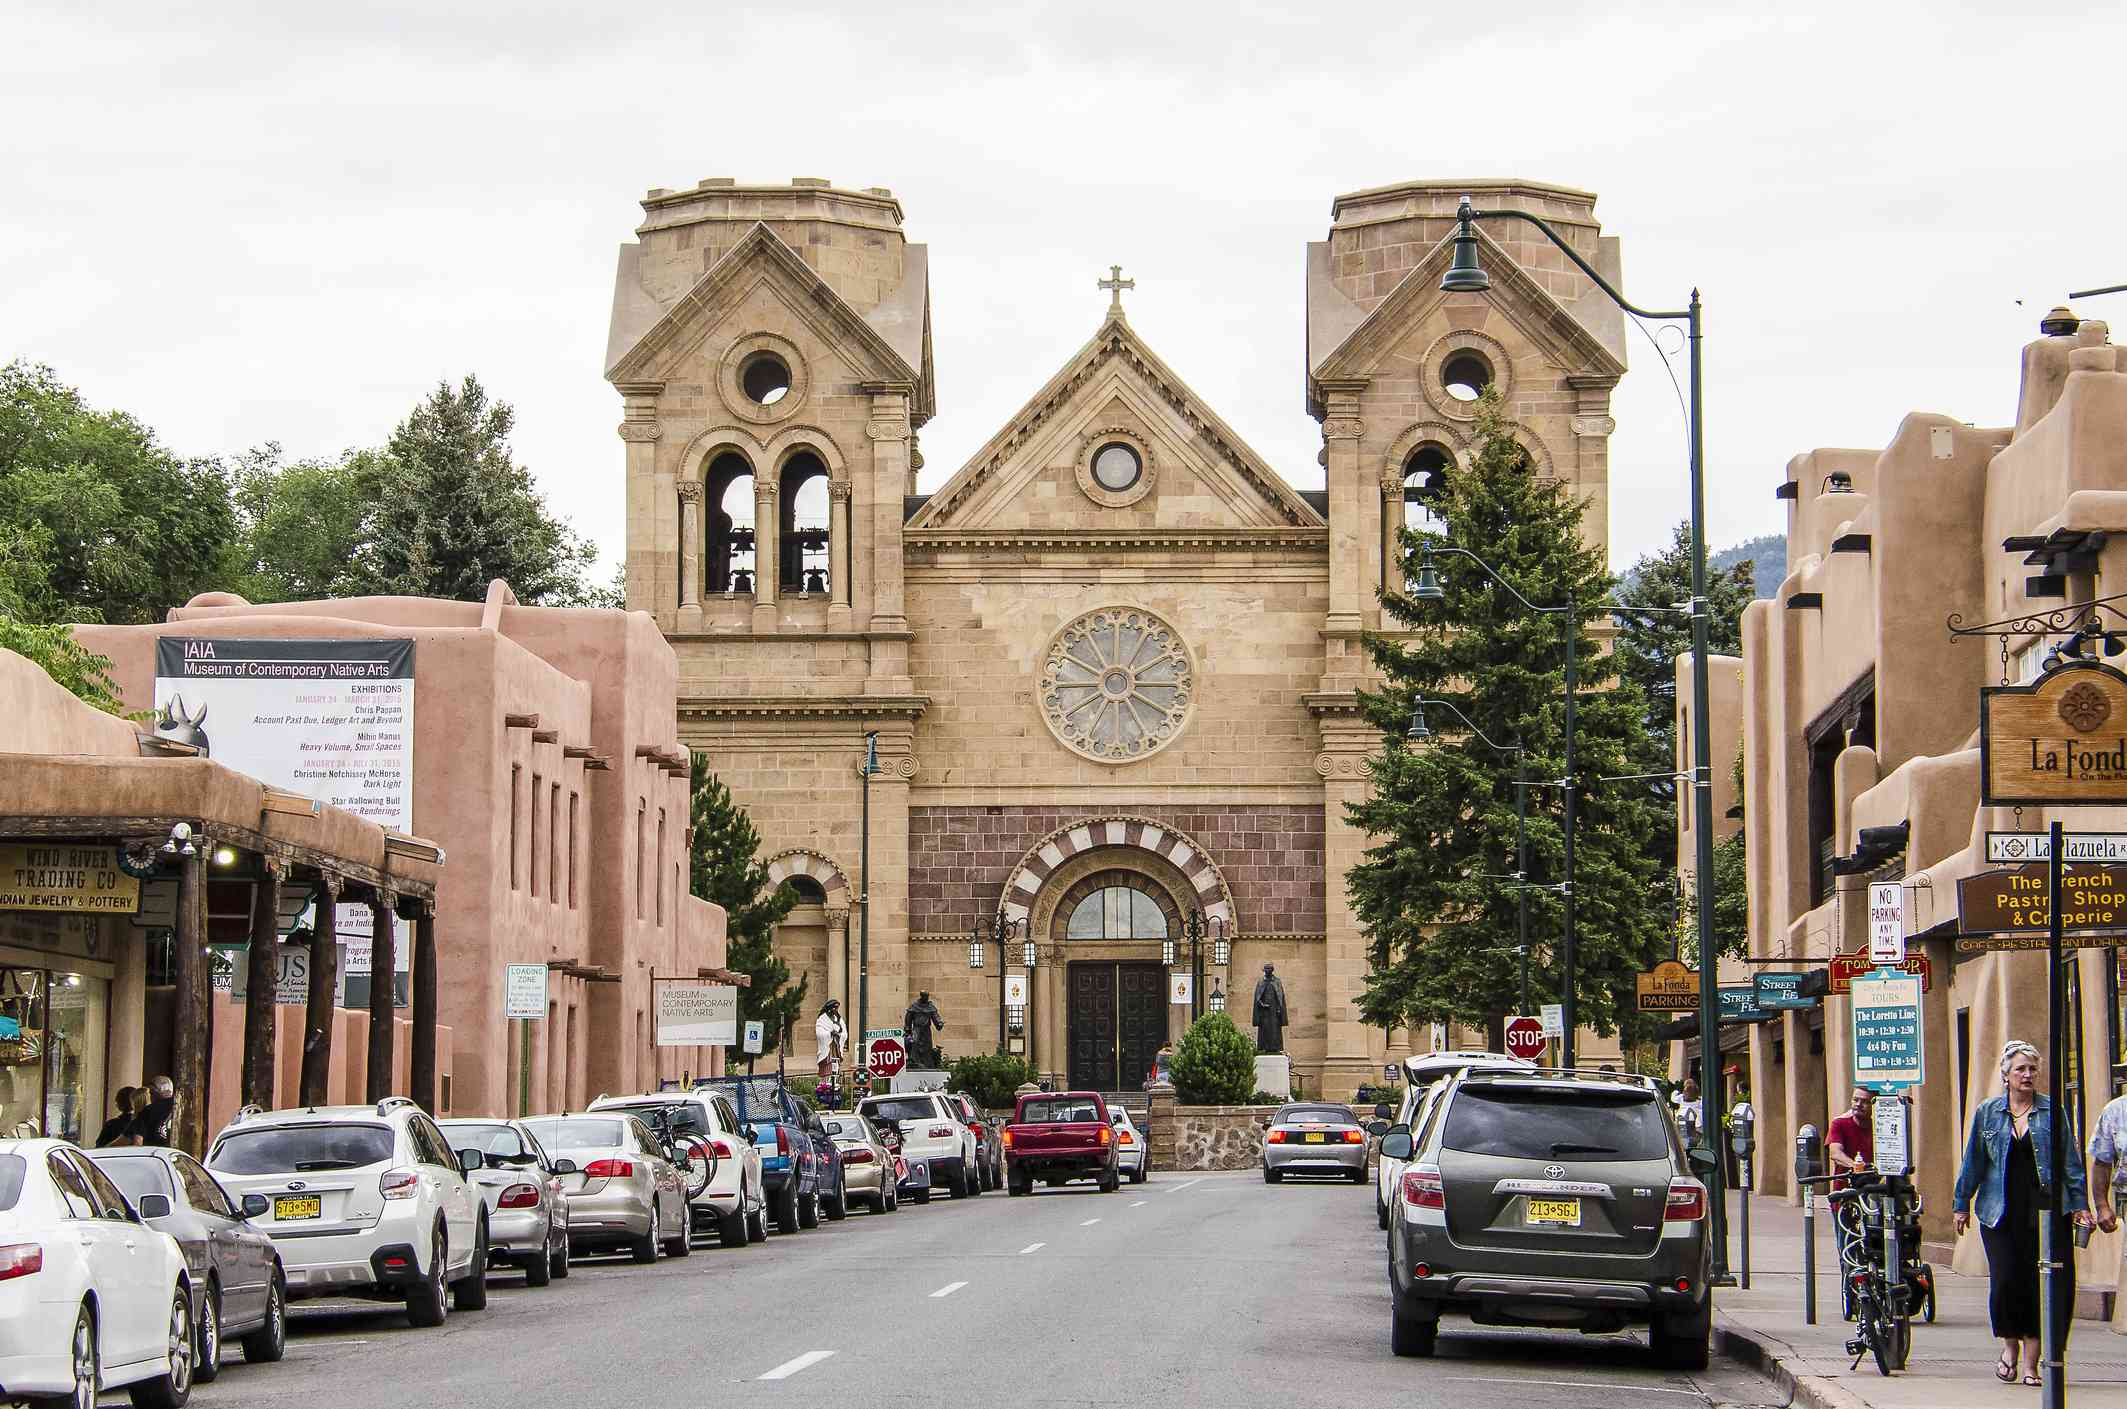 Downtown street with Cathedral Basilica of St. Francis of Assisi